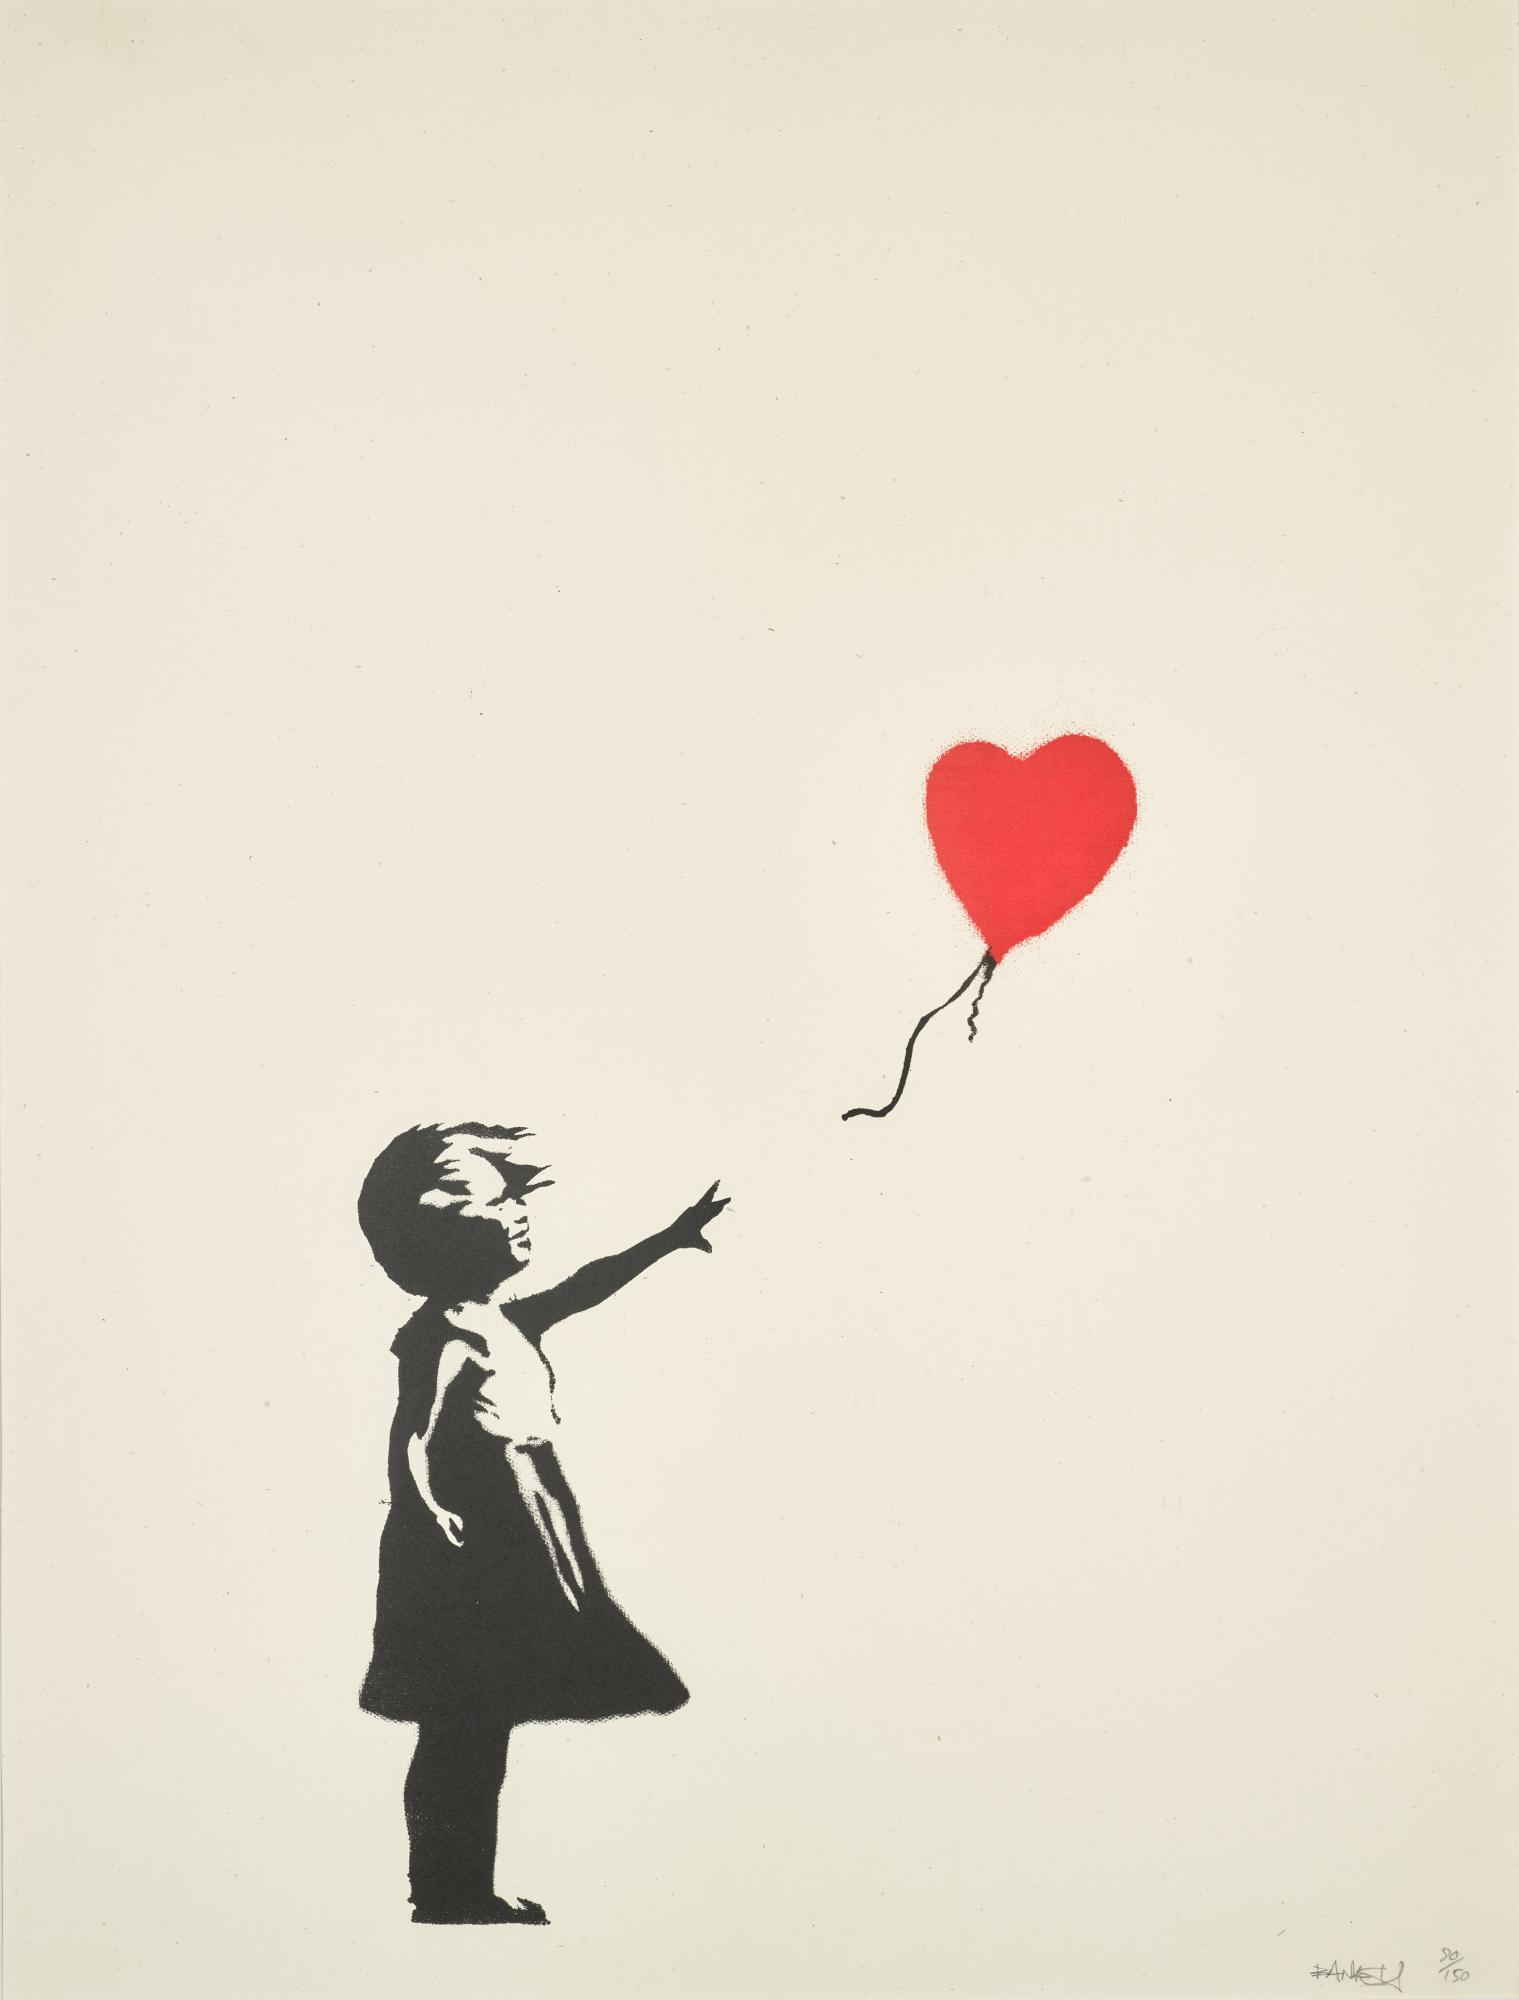 BANKSY | GIRL WITH BALLOON | Banksy | Online 2019 | Sotheby's